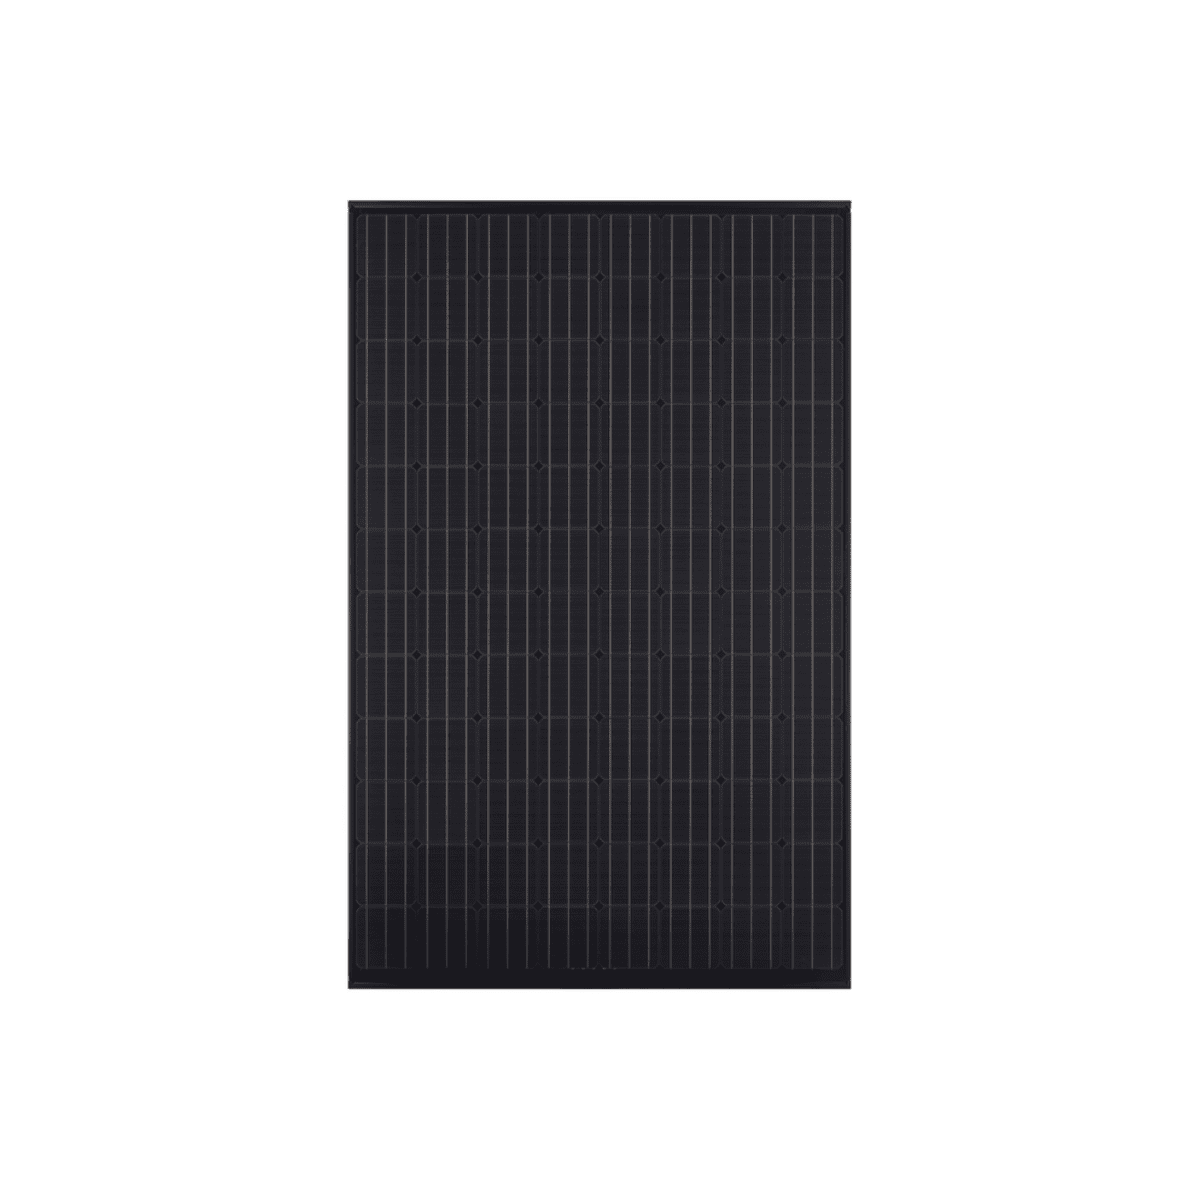 Panasonic HIT N335K Black KURO 335W Solar Panel VBHN335KJ01 for Sale